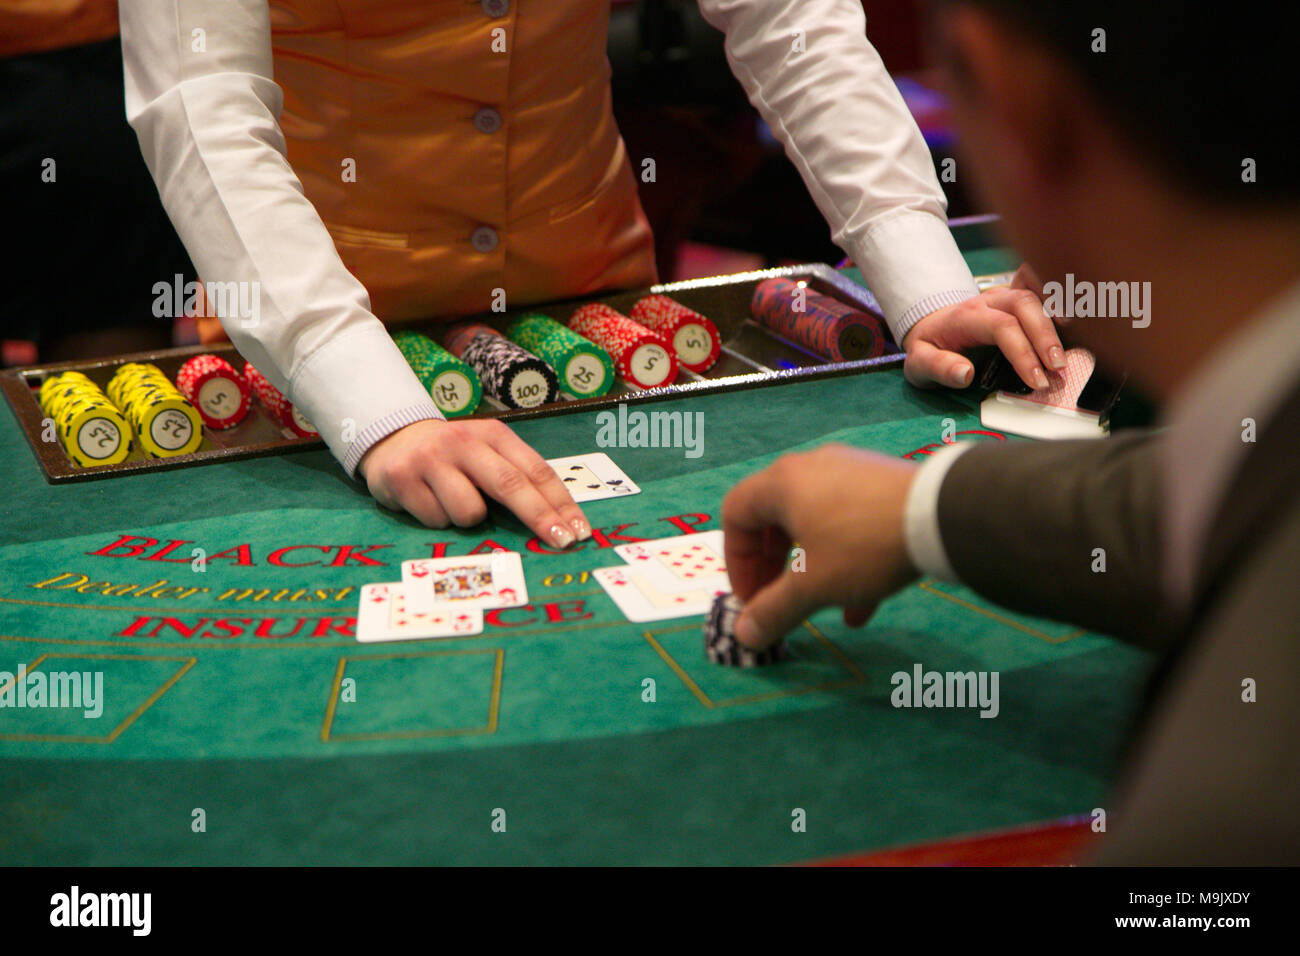 Dealer puts down a card on blackjack table - Stock Image